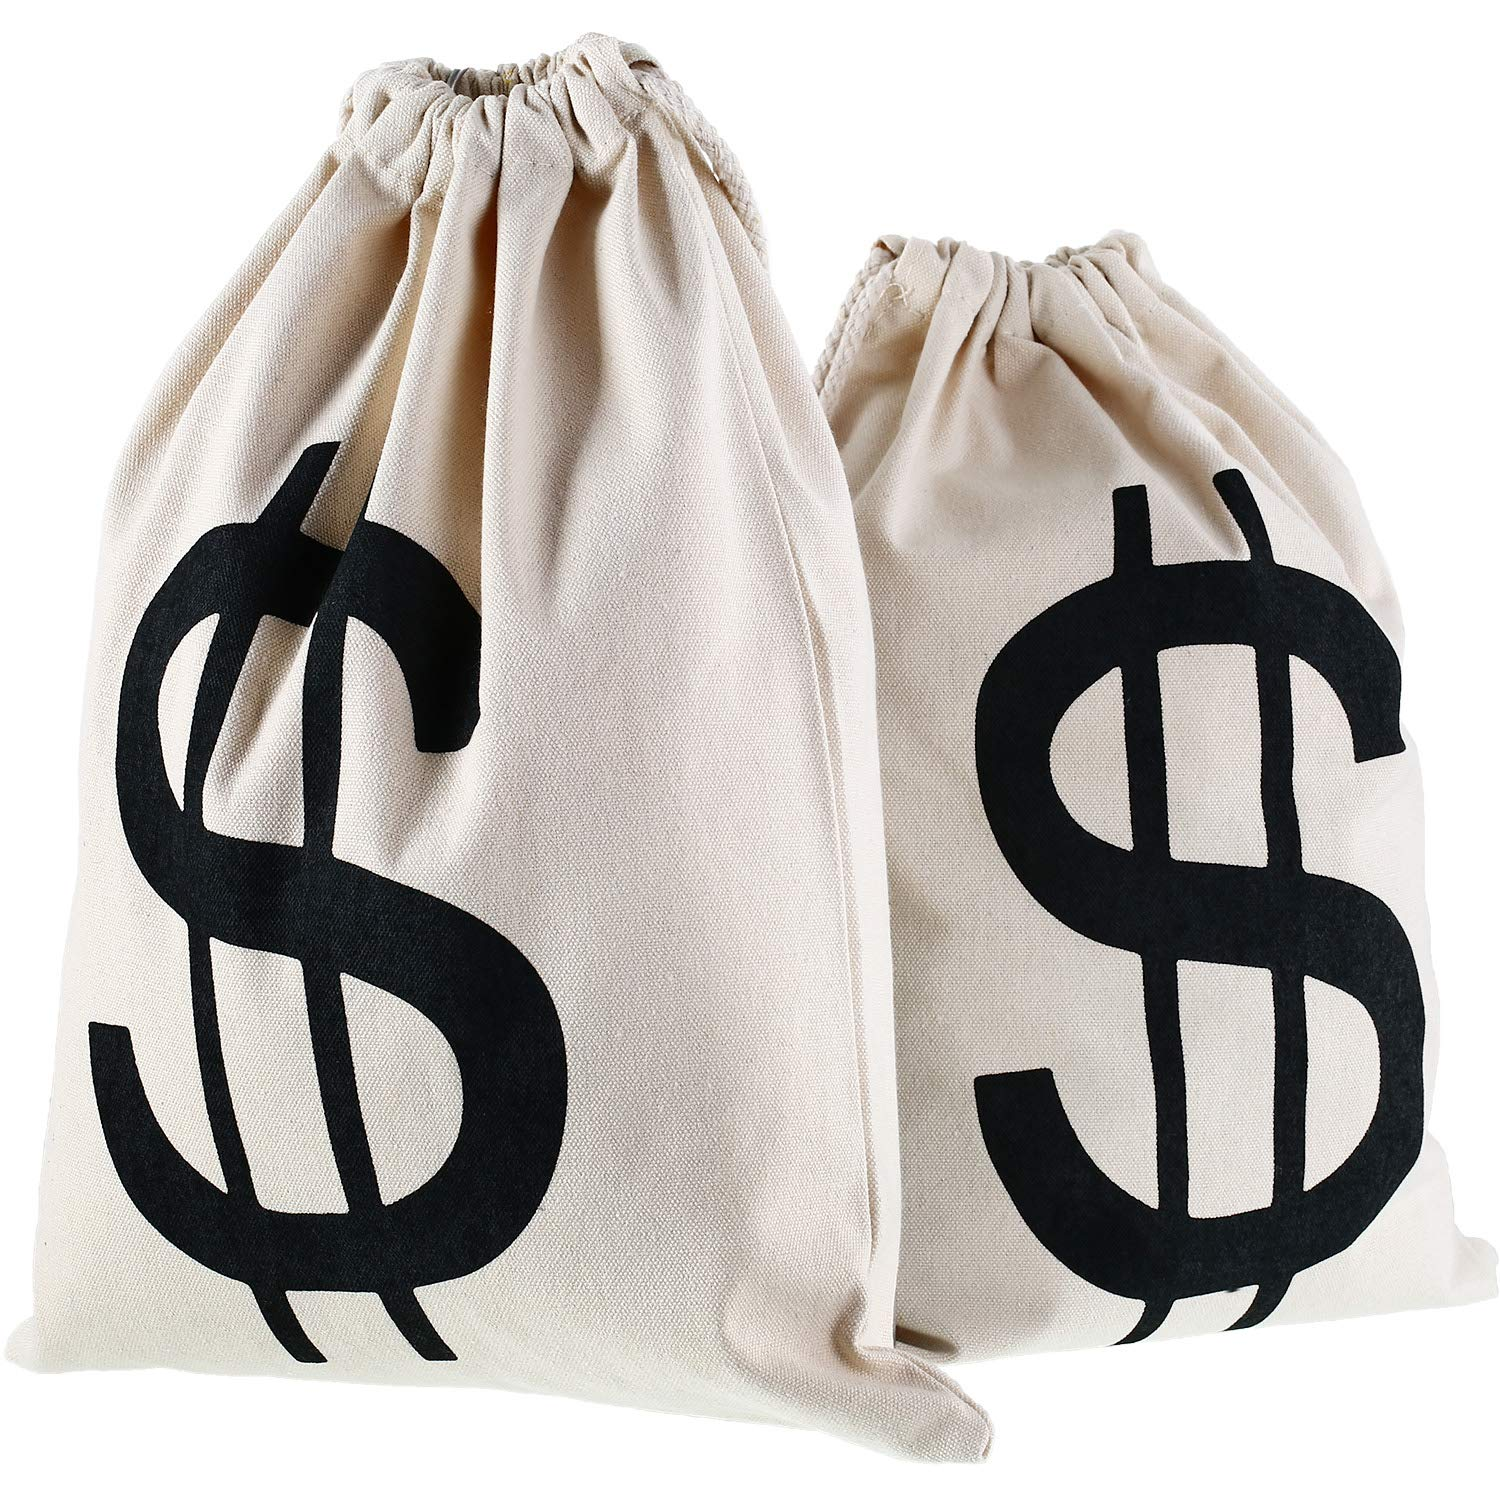 Gejoy Cosplay Bandit Eye Mask Costume Money Bags with Dollar Sign and Gloves Black